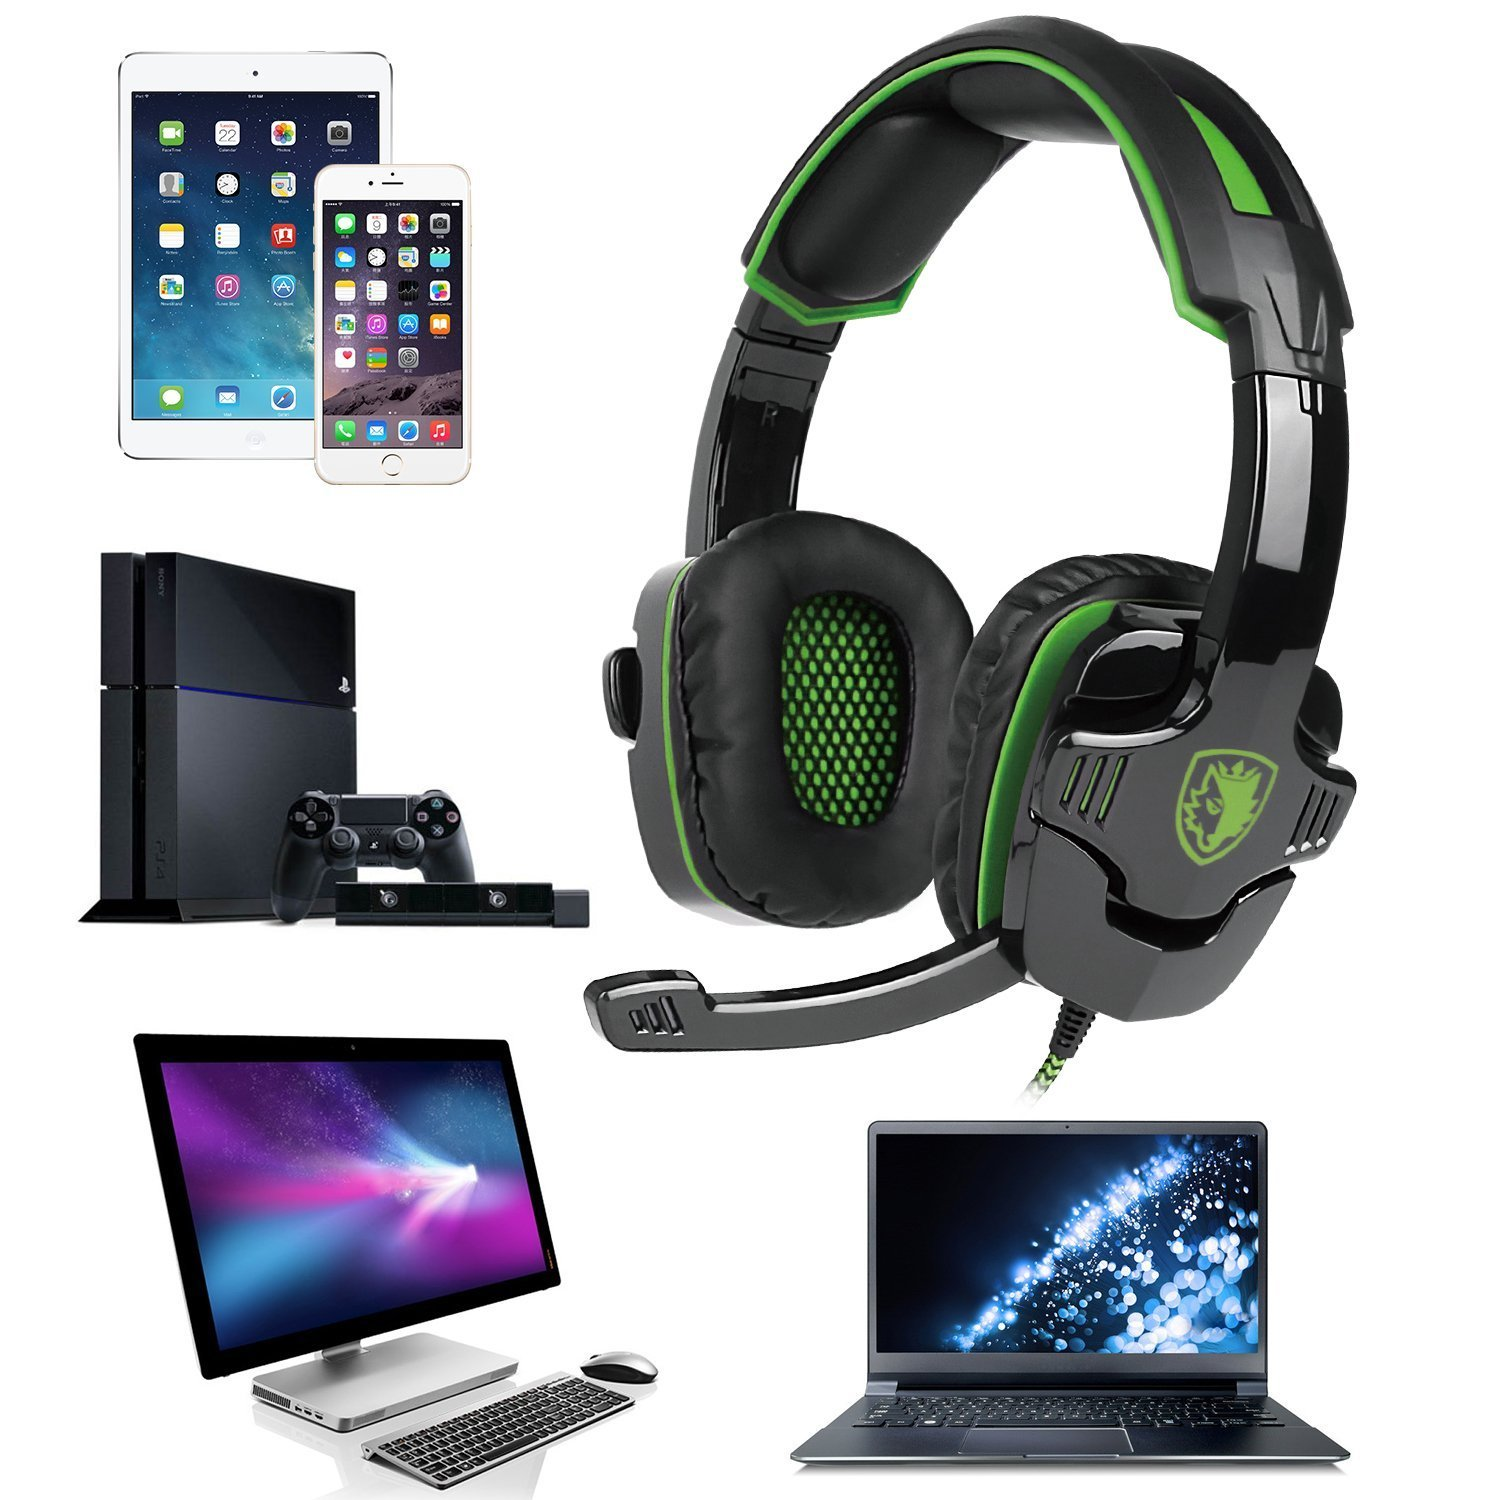 Gaming Headset with Microphones In-line Volume Control for New Xbox One PS4 PC Mac iPad iPod Laptop Computer Smart phones, Sades SA930 3.5mm Wired Noise Isolation Bass Surround Over-Ear Headphones by SADES